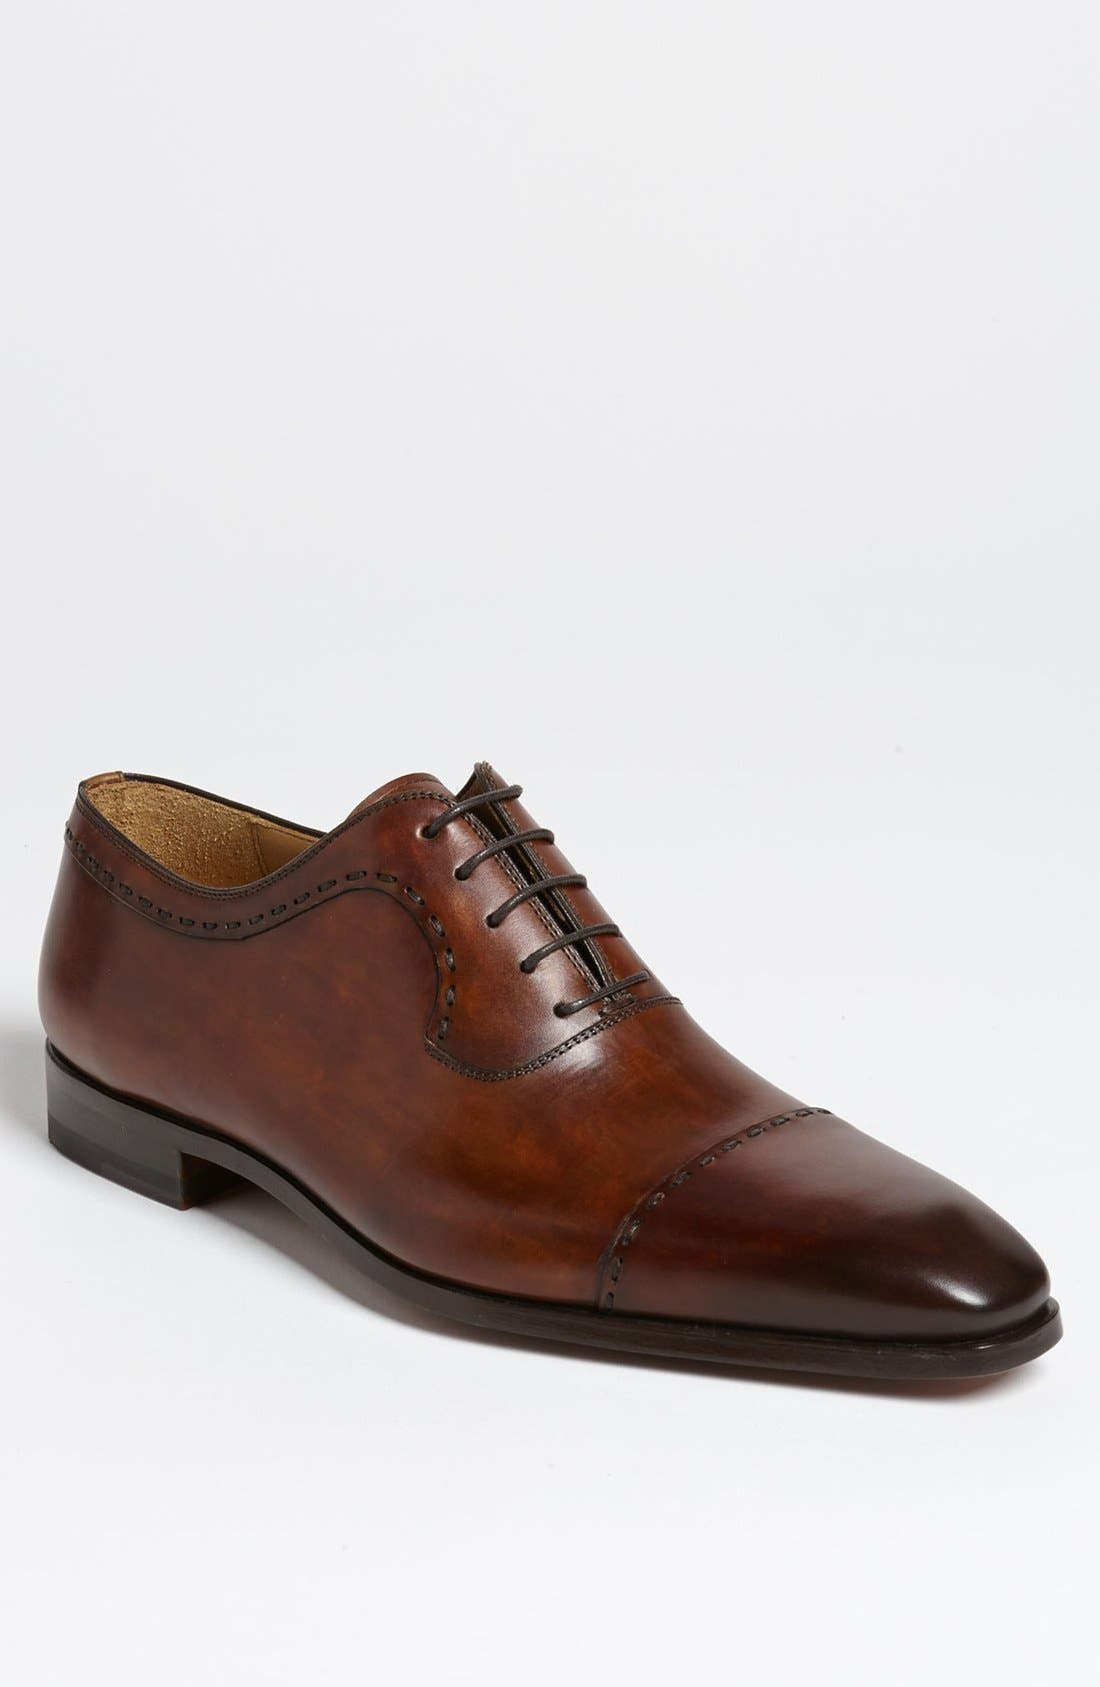 Alternate Image 1 Selected - Magnanni 'Ariel' Cap Toe Oxford